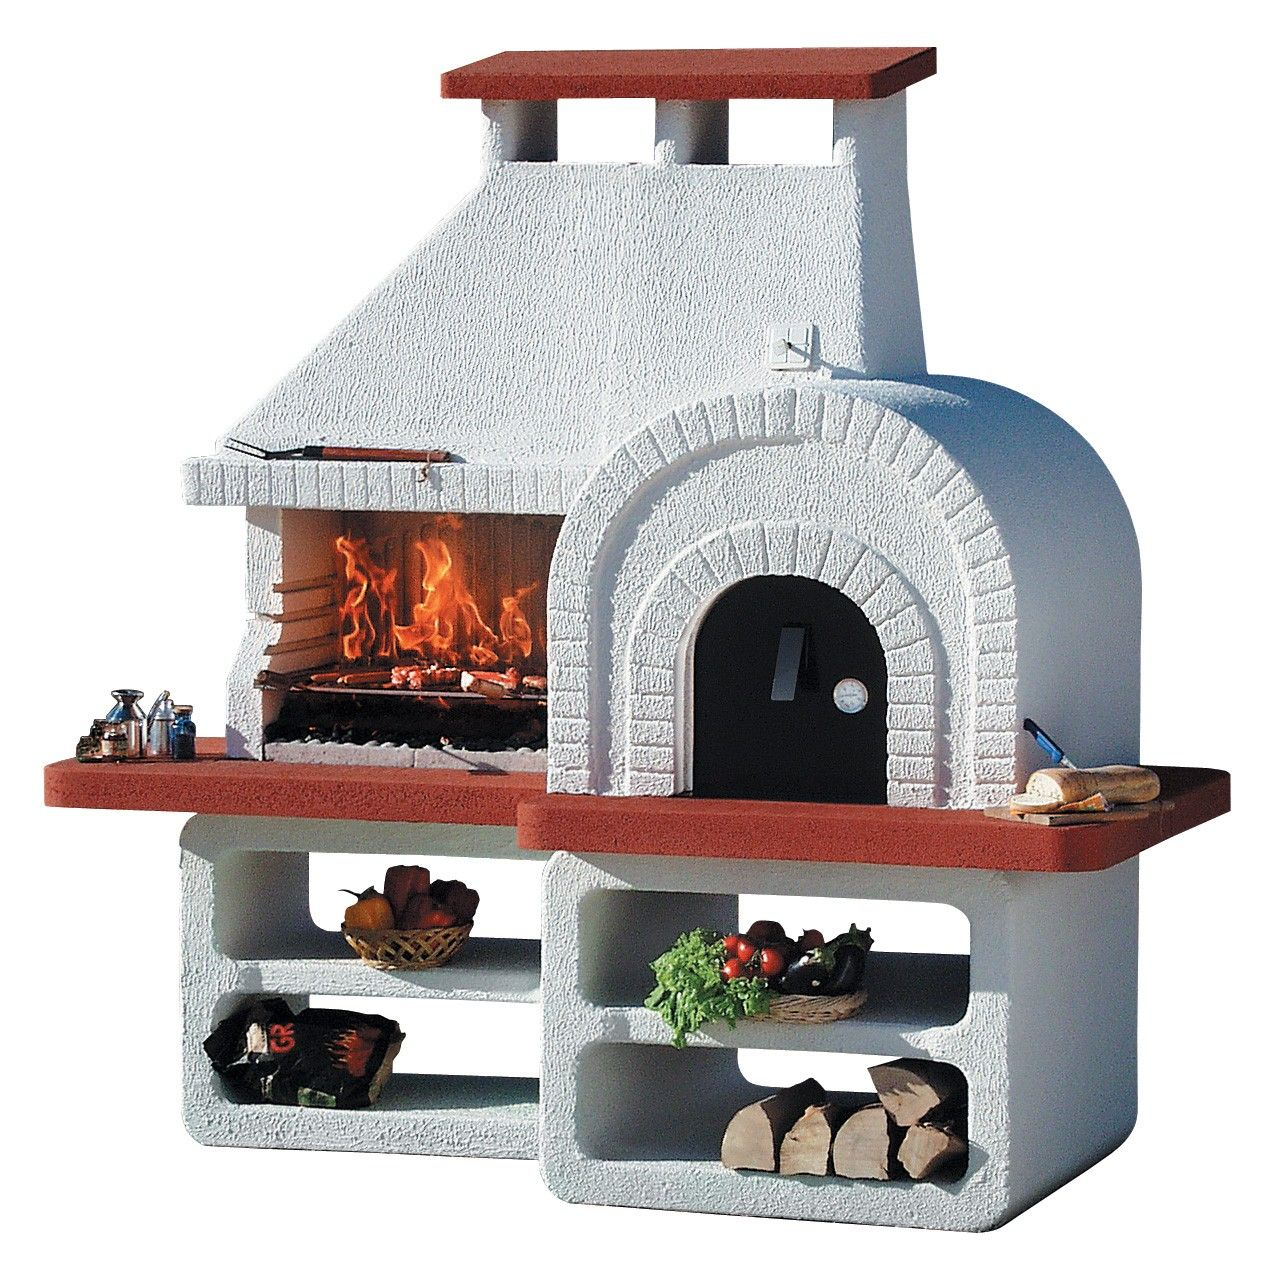 wood pizza oven charcoal bbq grill combo outdoor kitchen dreams pinterest charcoal bbq. Black Bedroom Furniture Sets. Home Design Ideas